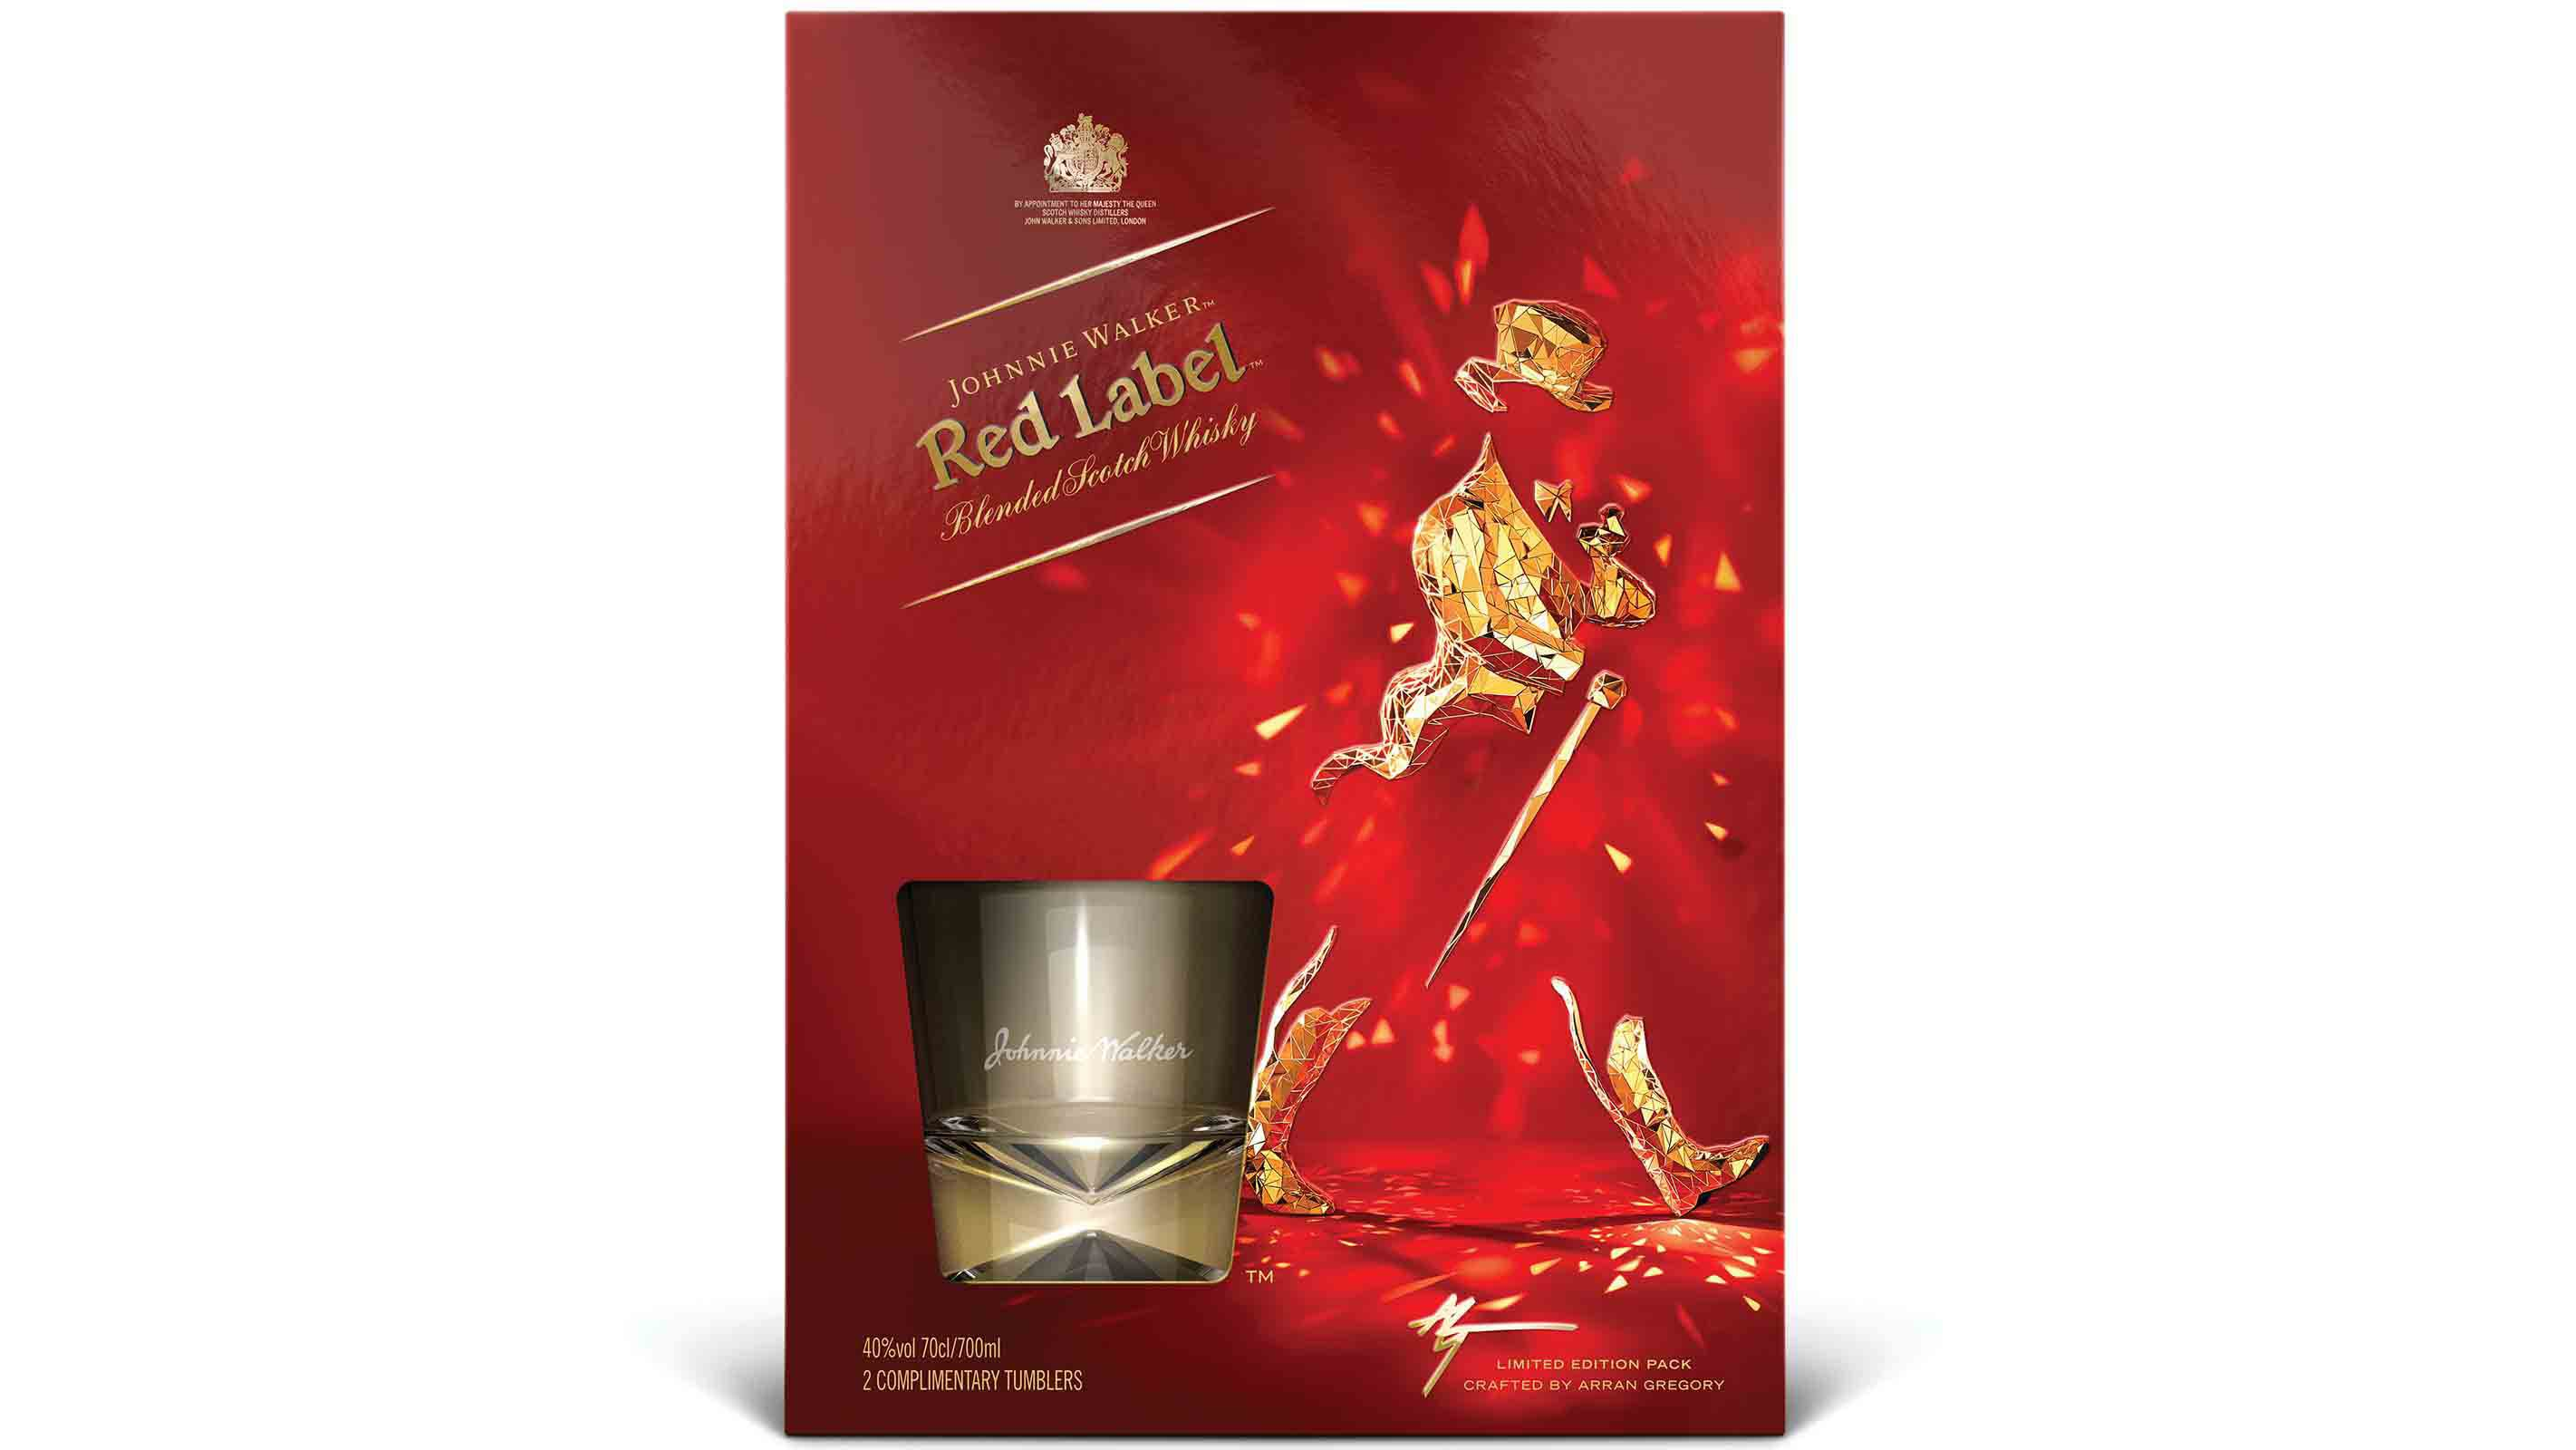 Johnnie Walker Red Label Limited Edition Pack crafted by Arran Gregory